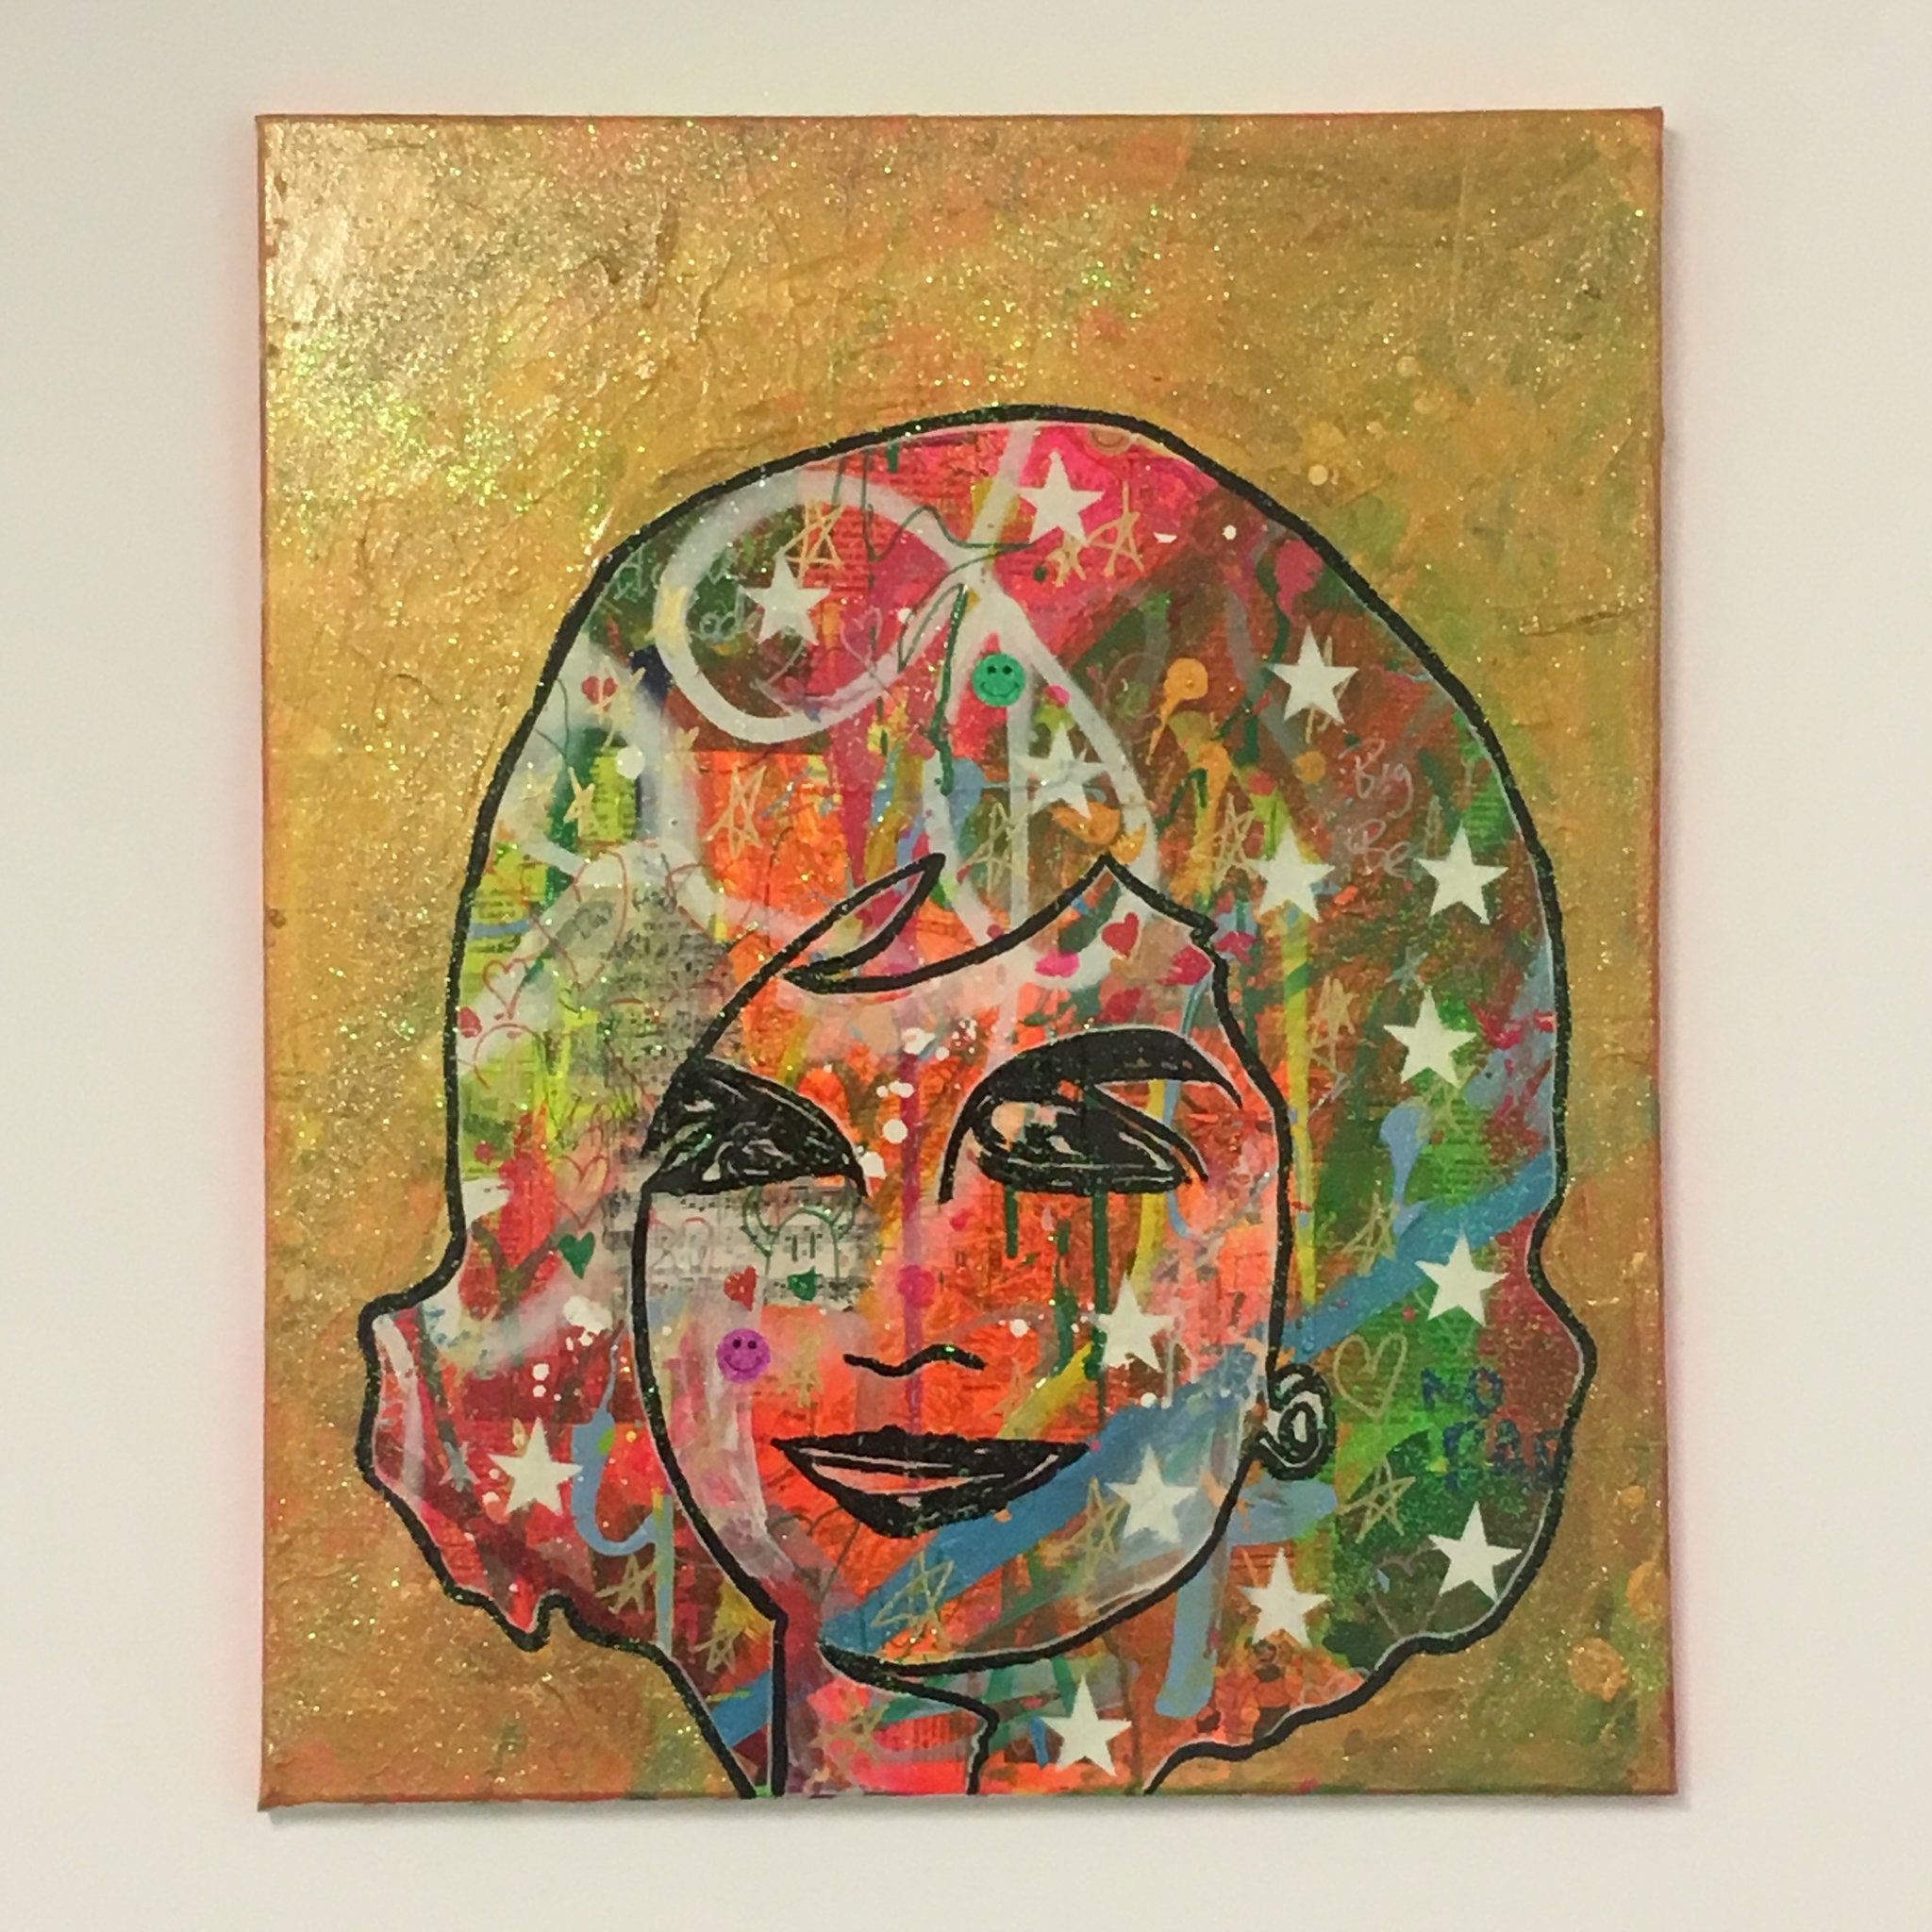 Jackie OK by Barrie J Davies 2017, Mixed media on canvas, 50cm x 60cm, unframed. Barrie J Davies is an Artist - Pop Art and Street art inspired Artist based in Brighton England UK - Pop Art Paintings, Street Art Prints & Editions available.